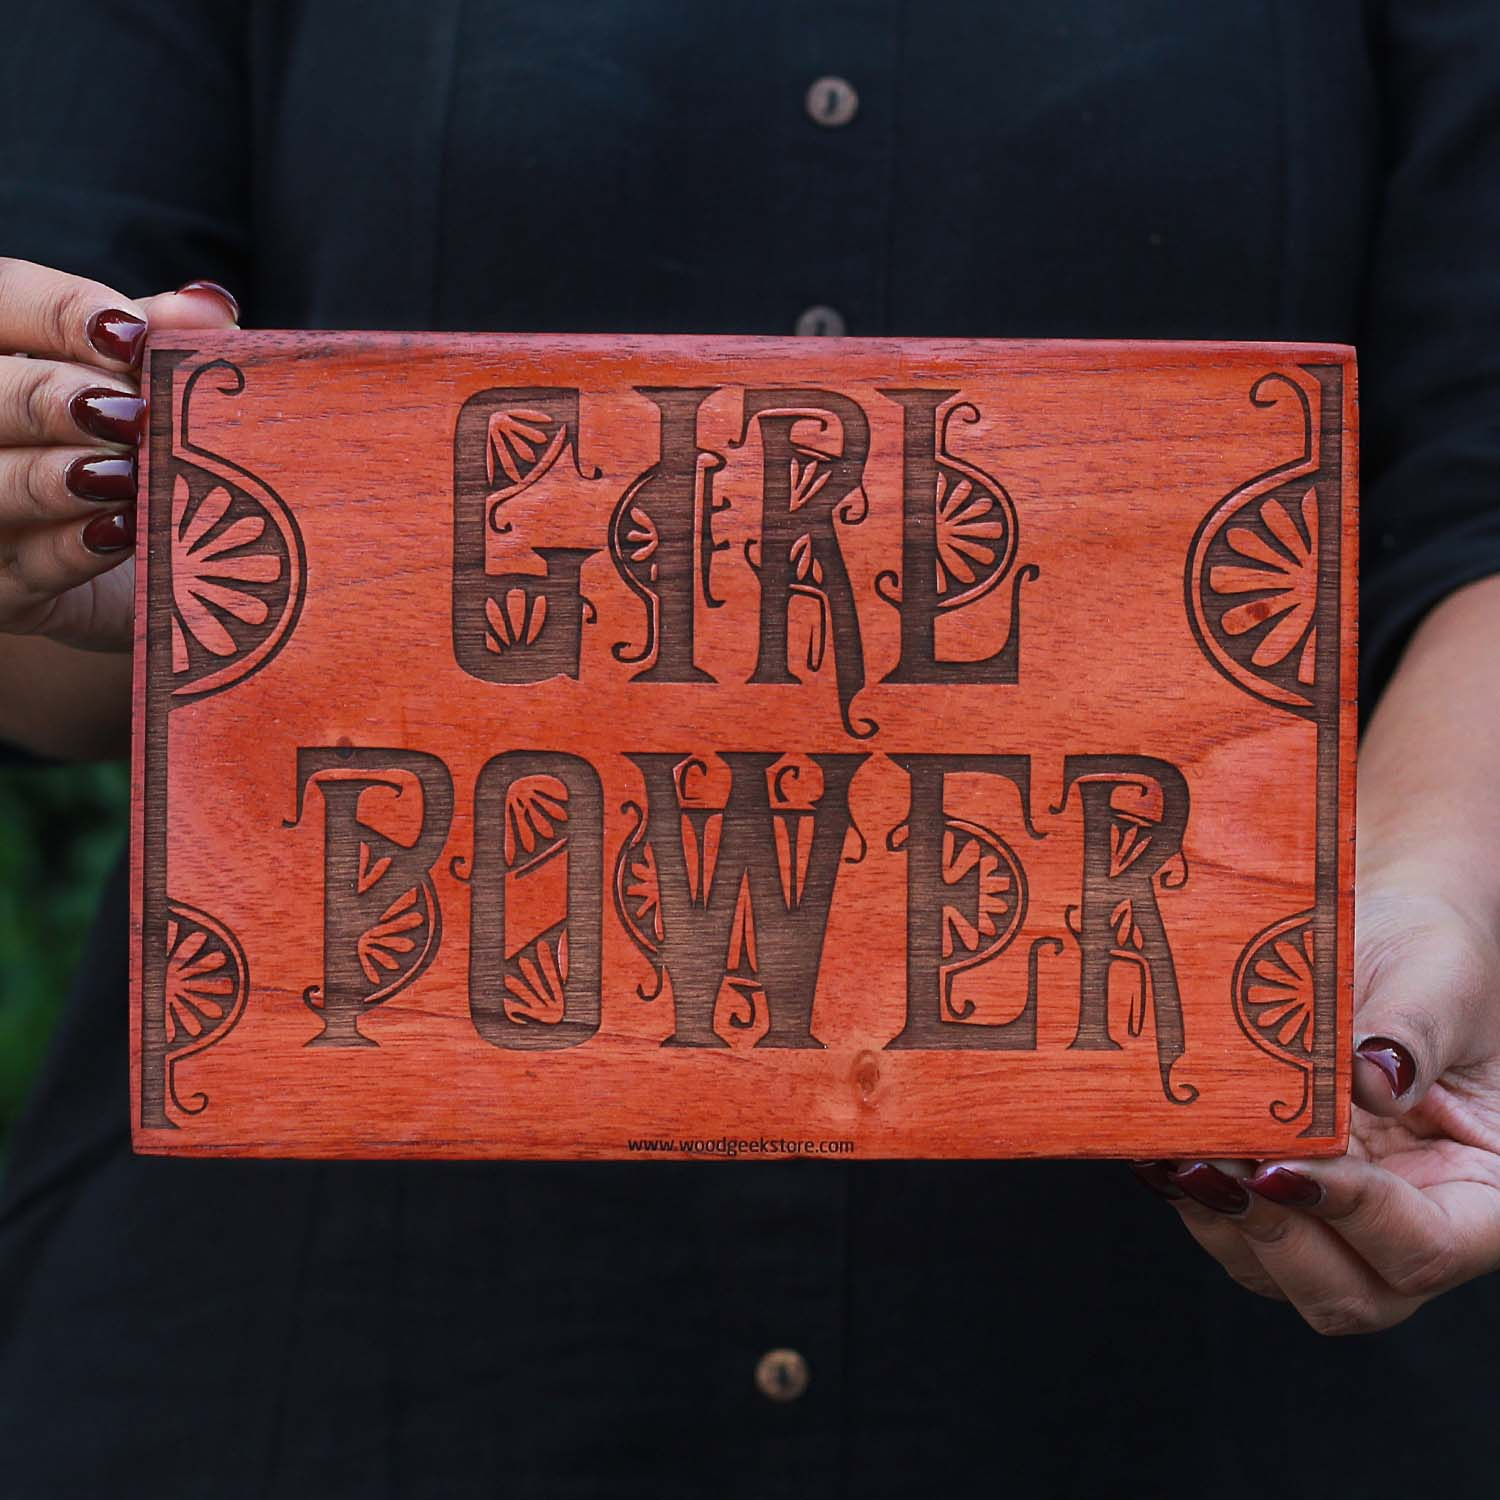 Girl Power Carved Wooden Poster - Wood Wall Art Decor by Woodgeek Store